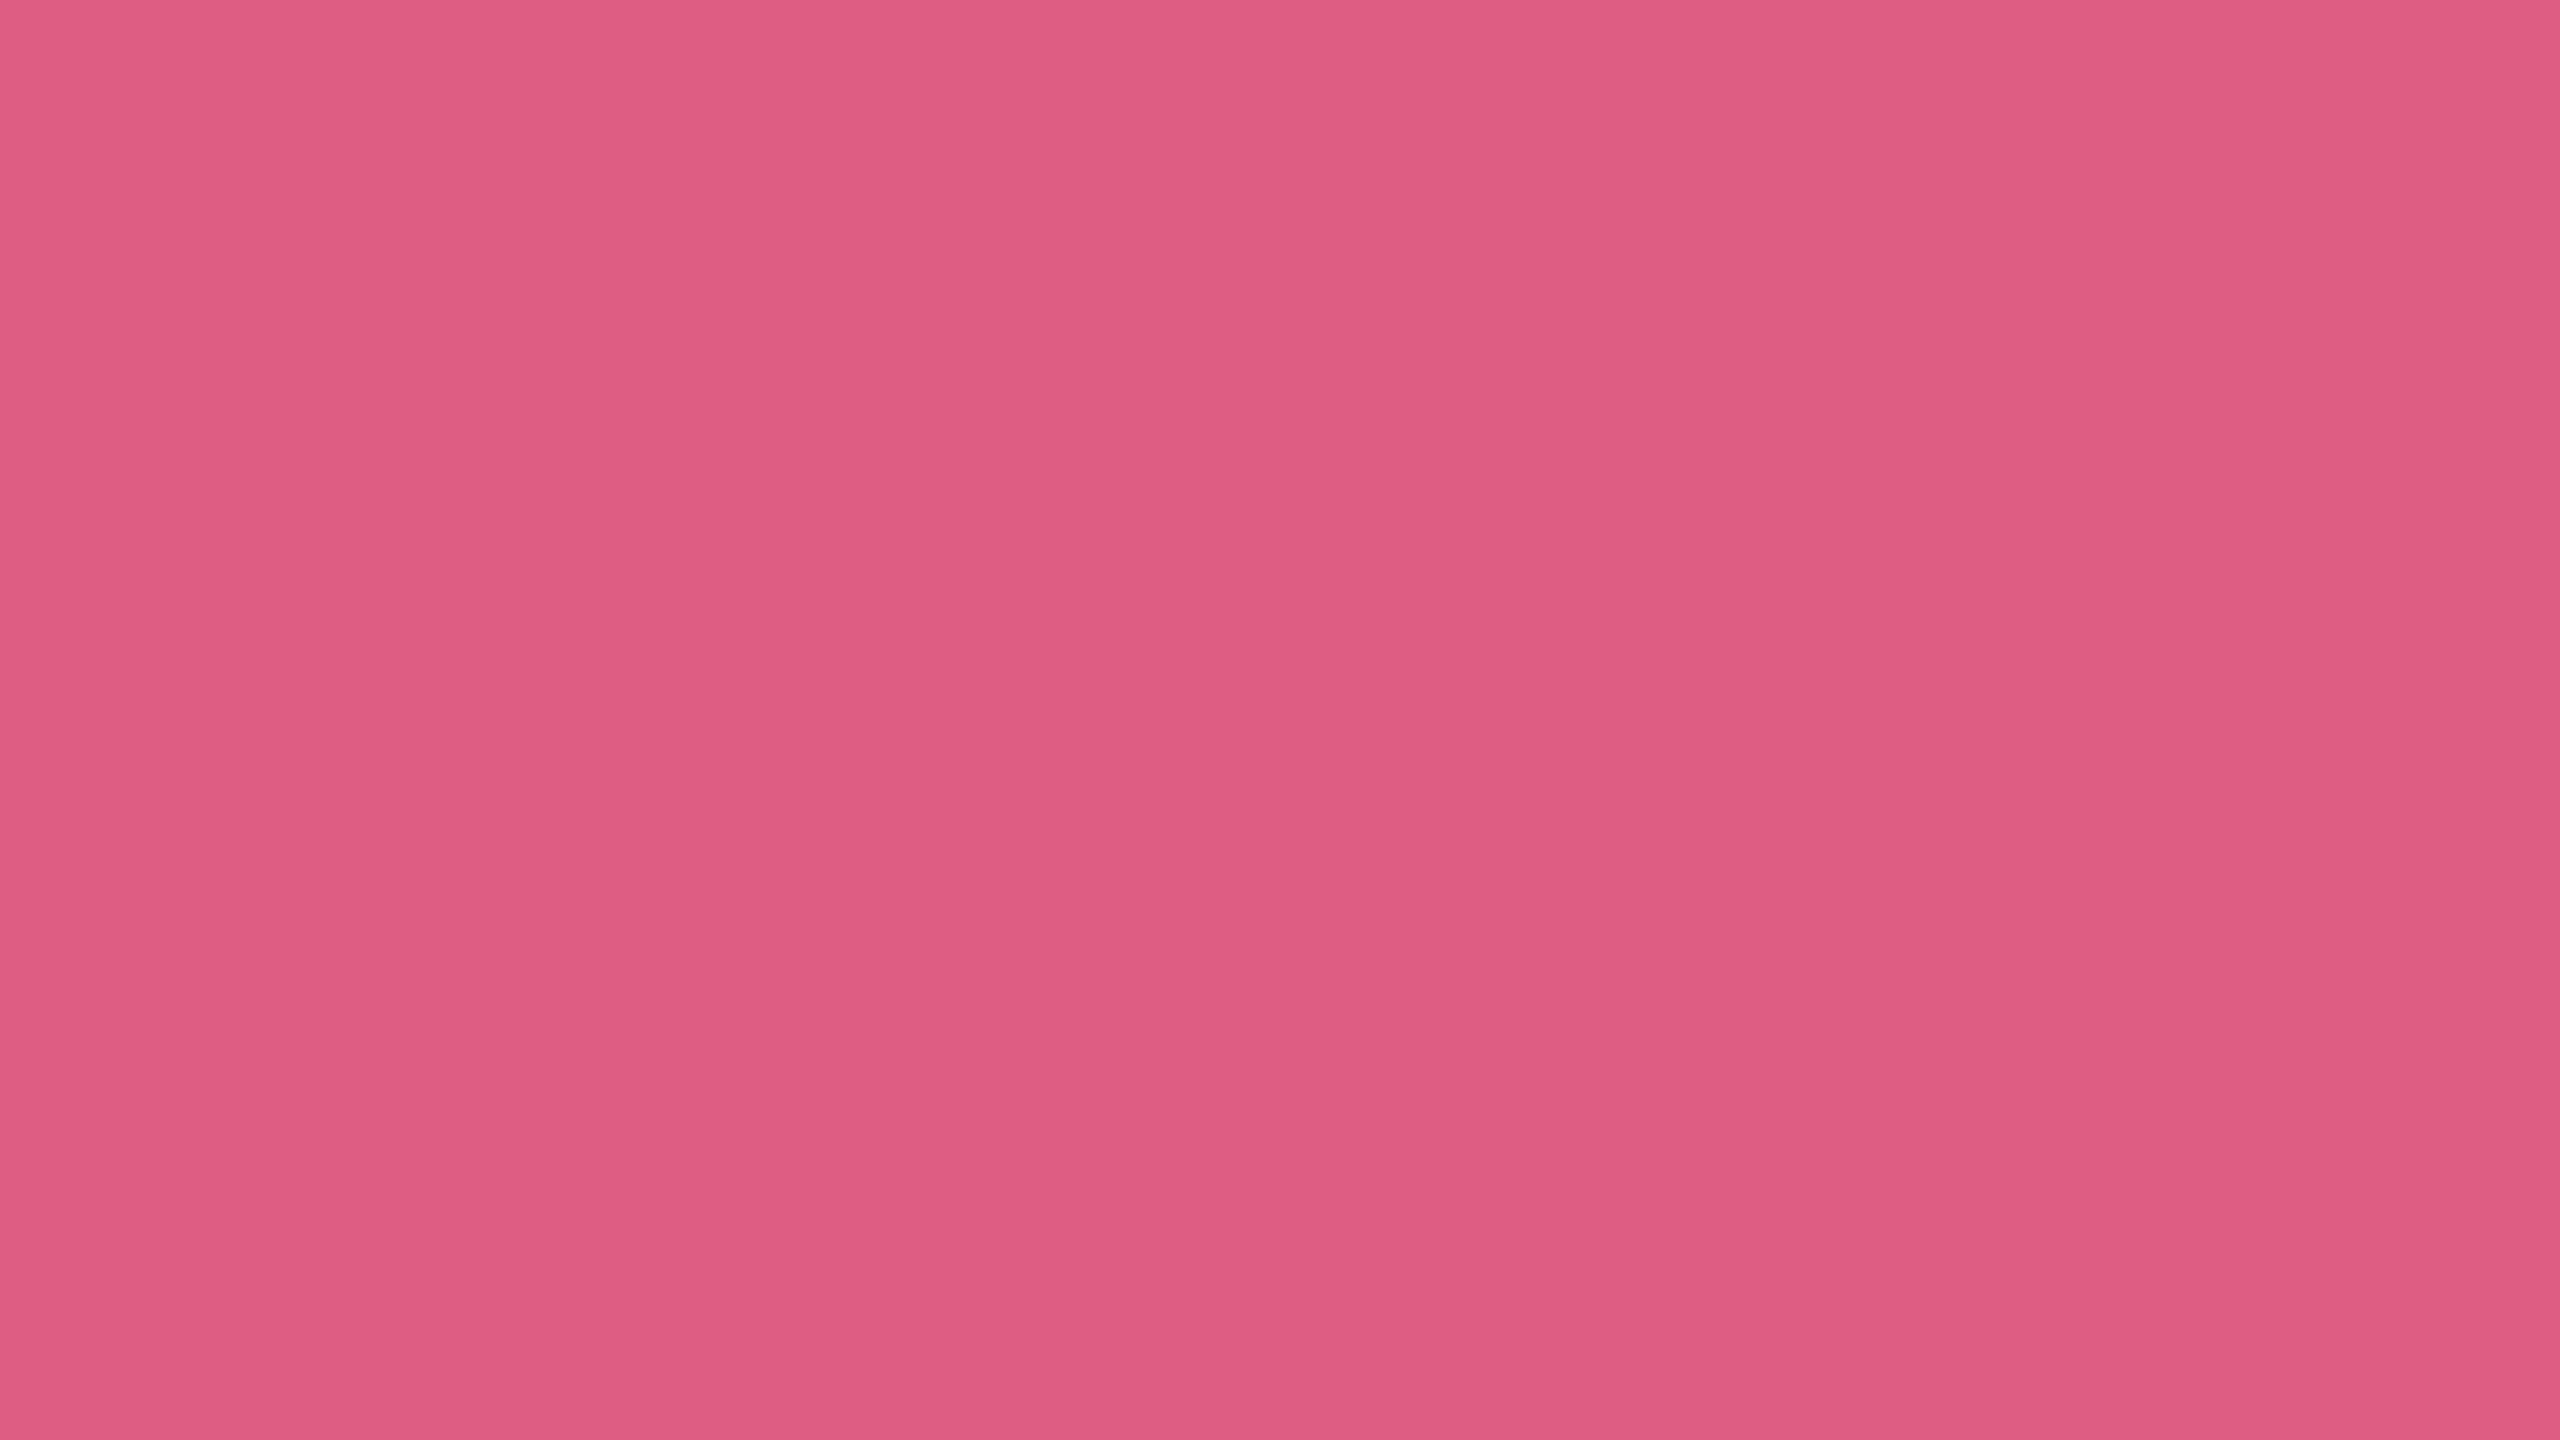 2560x1440 Blush Solid Color Background